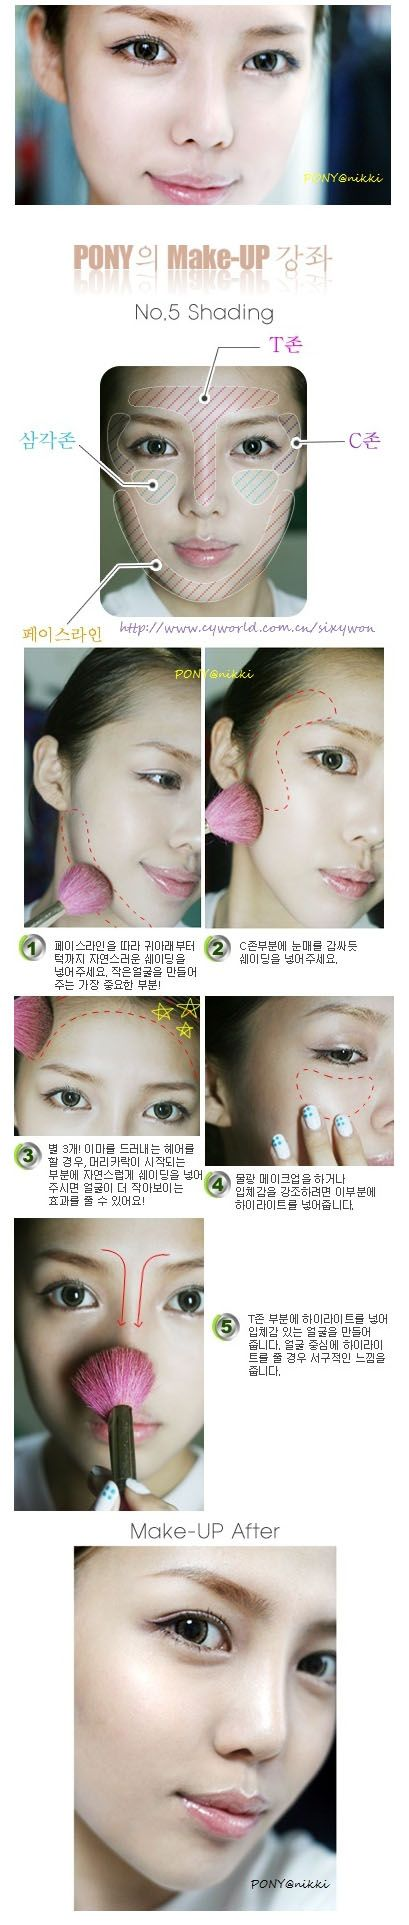 BEAUTY: Make-up Tutorials By The Ulzzang Pony